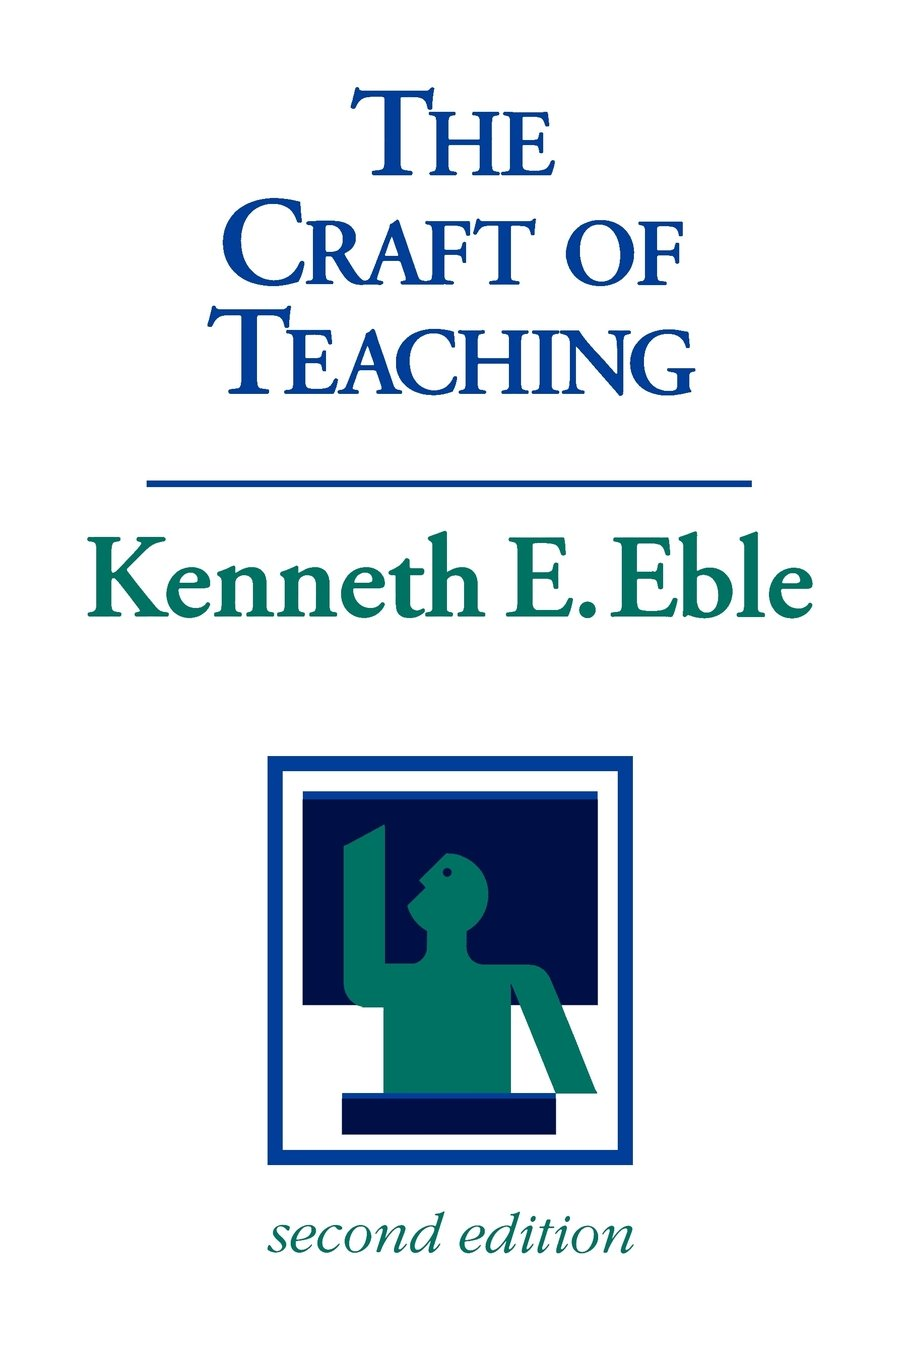 Literature craft and voice 2nd edition - The Craft Of Teaching A Guide To Mastering The Professor S Art Kenneth E Eble 9781555426644 Amazon Com Books